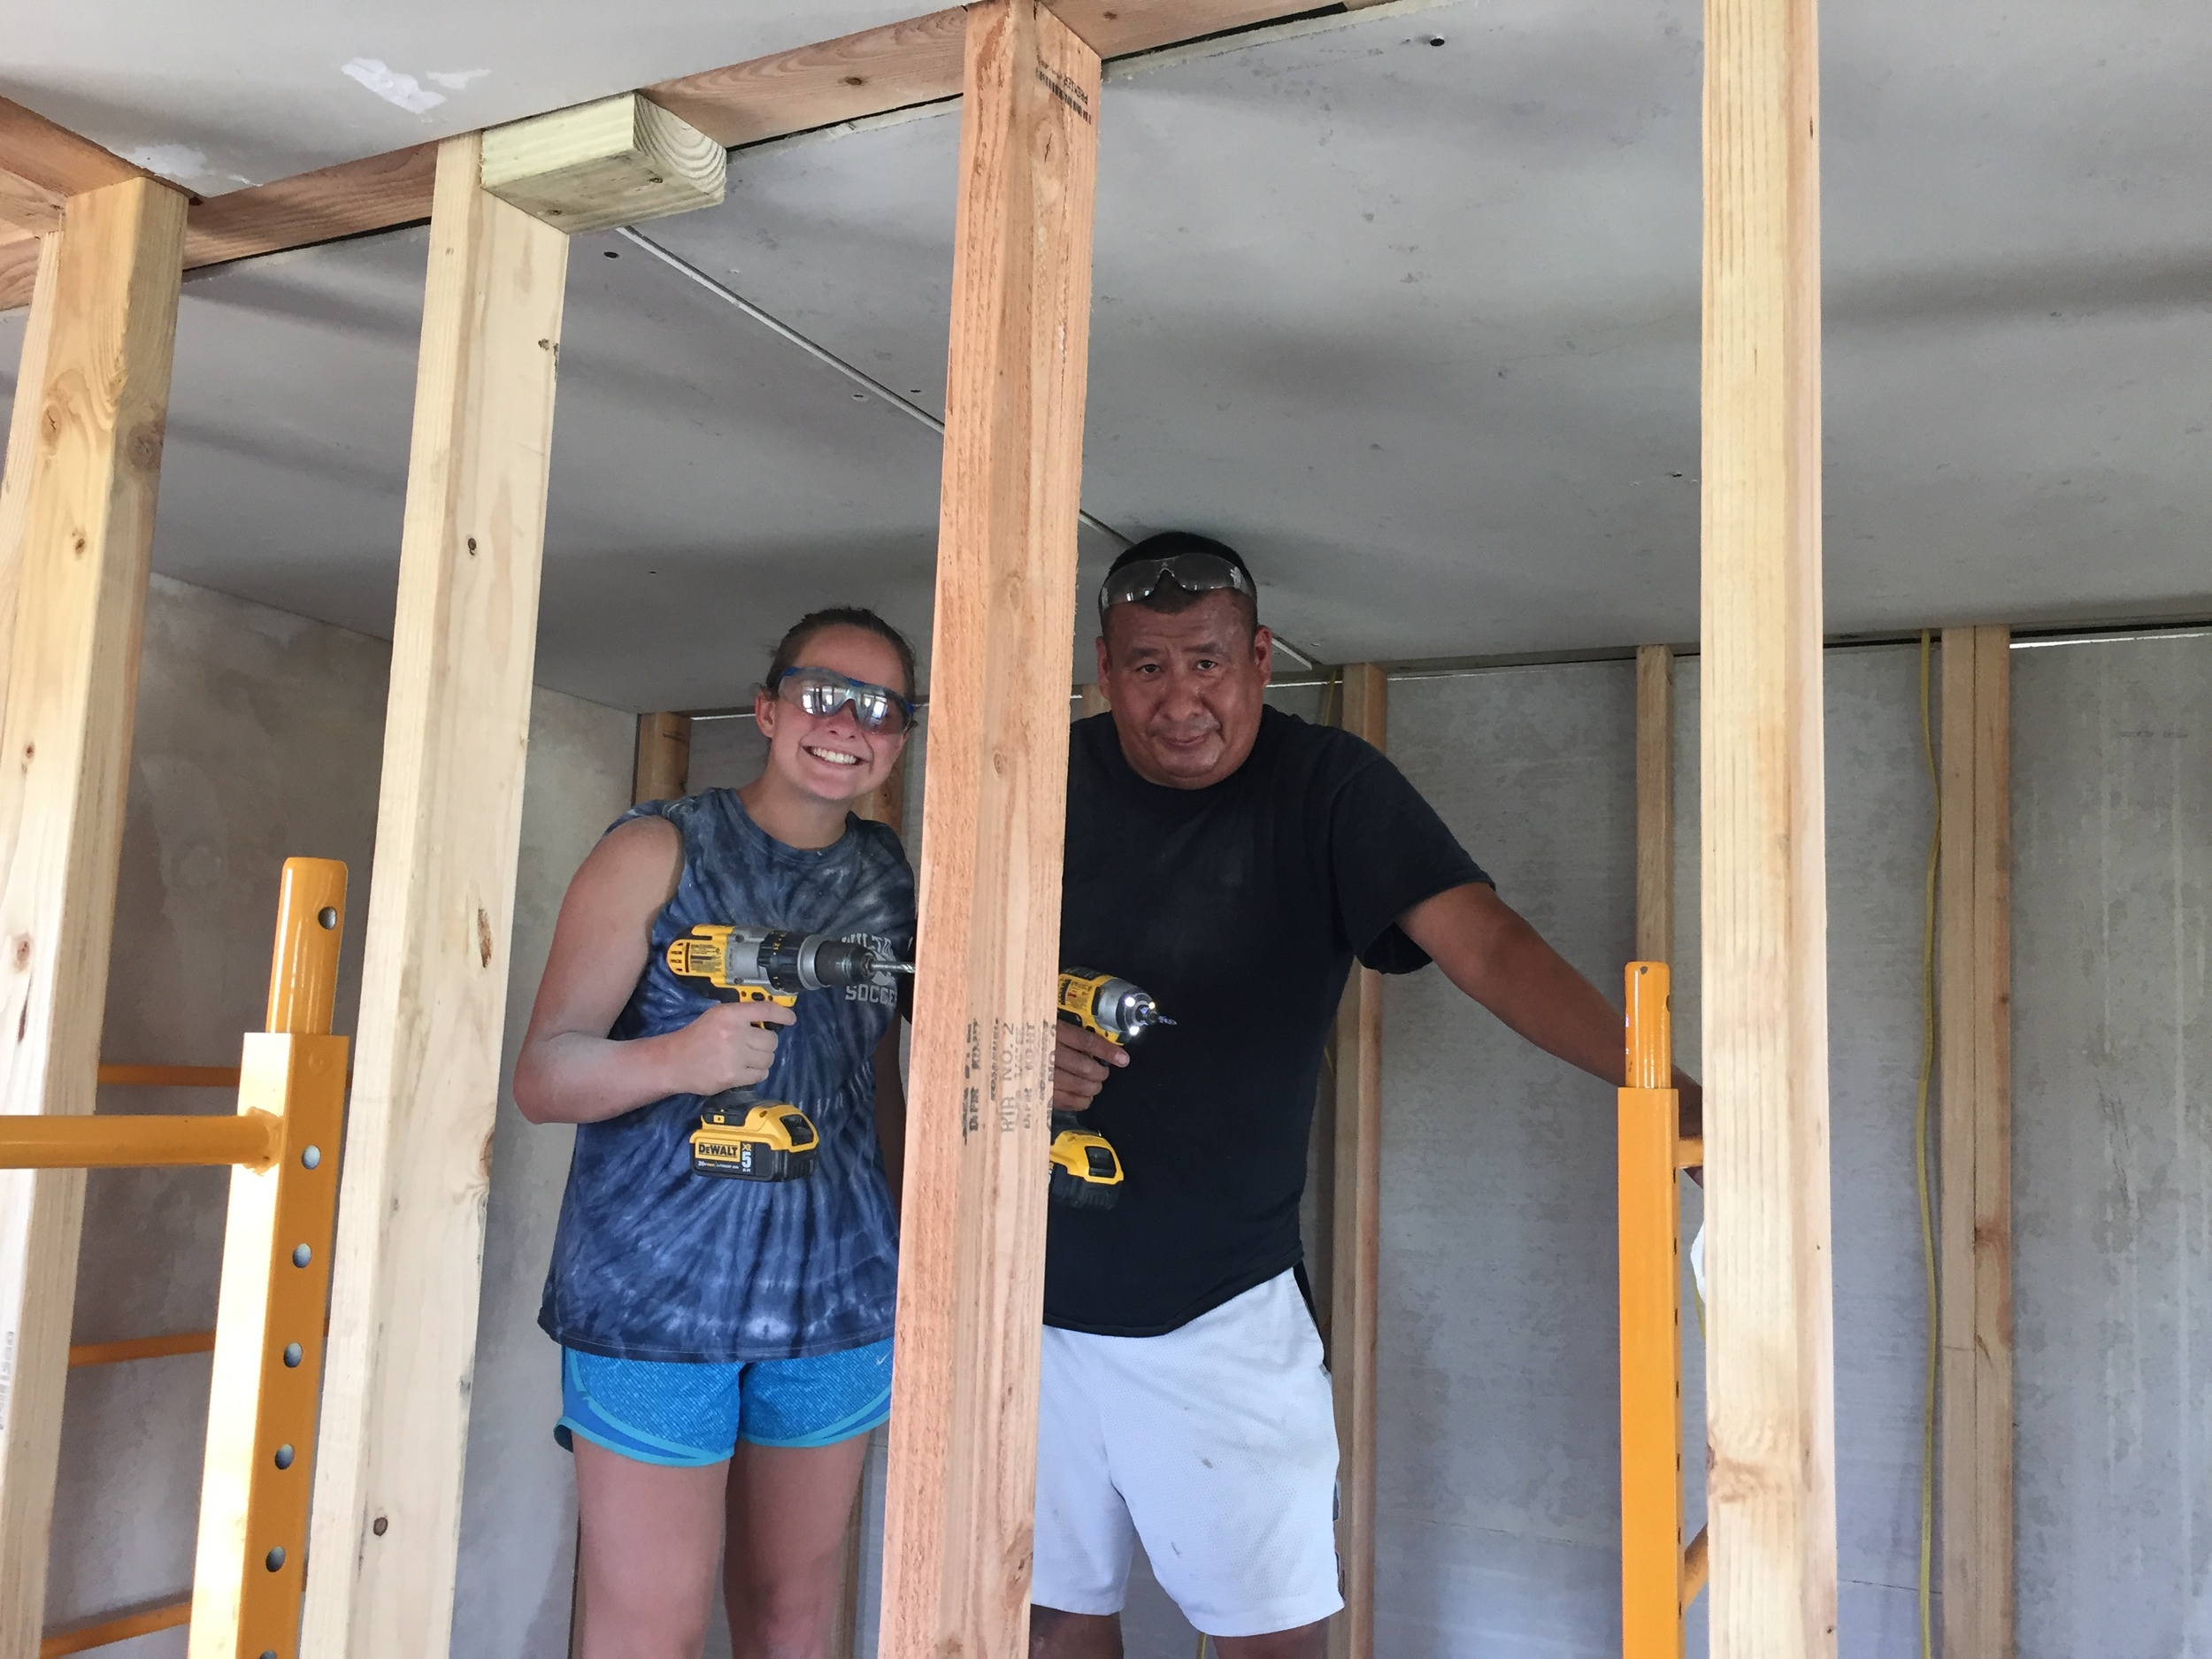 Working side-by-side: Volunteer Katie works with Shane of La Plant to frame in a bathroom ceiling on a new home.